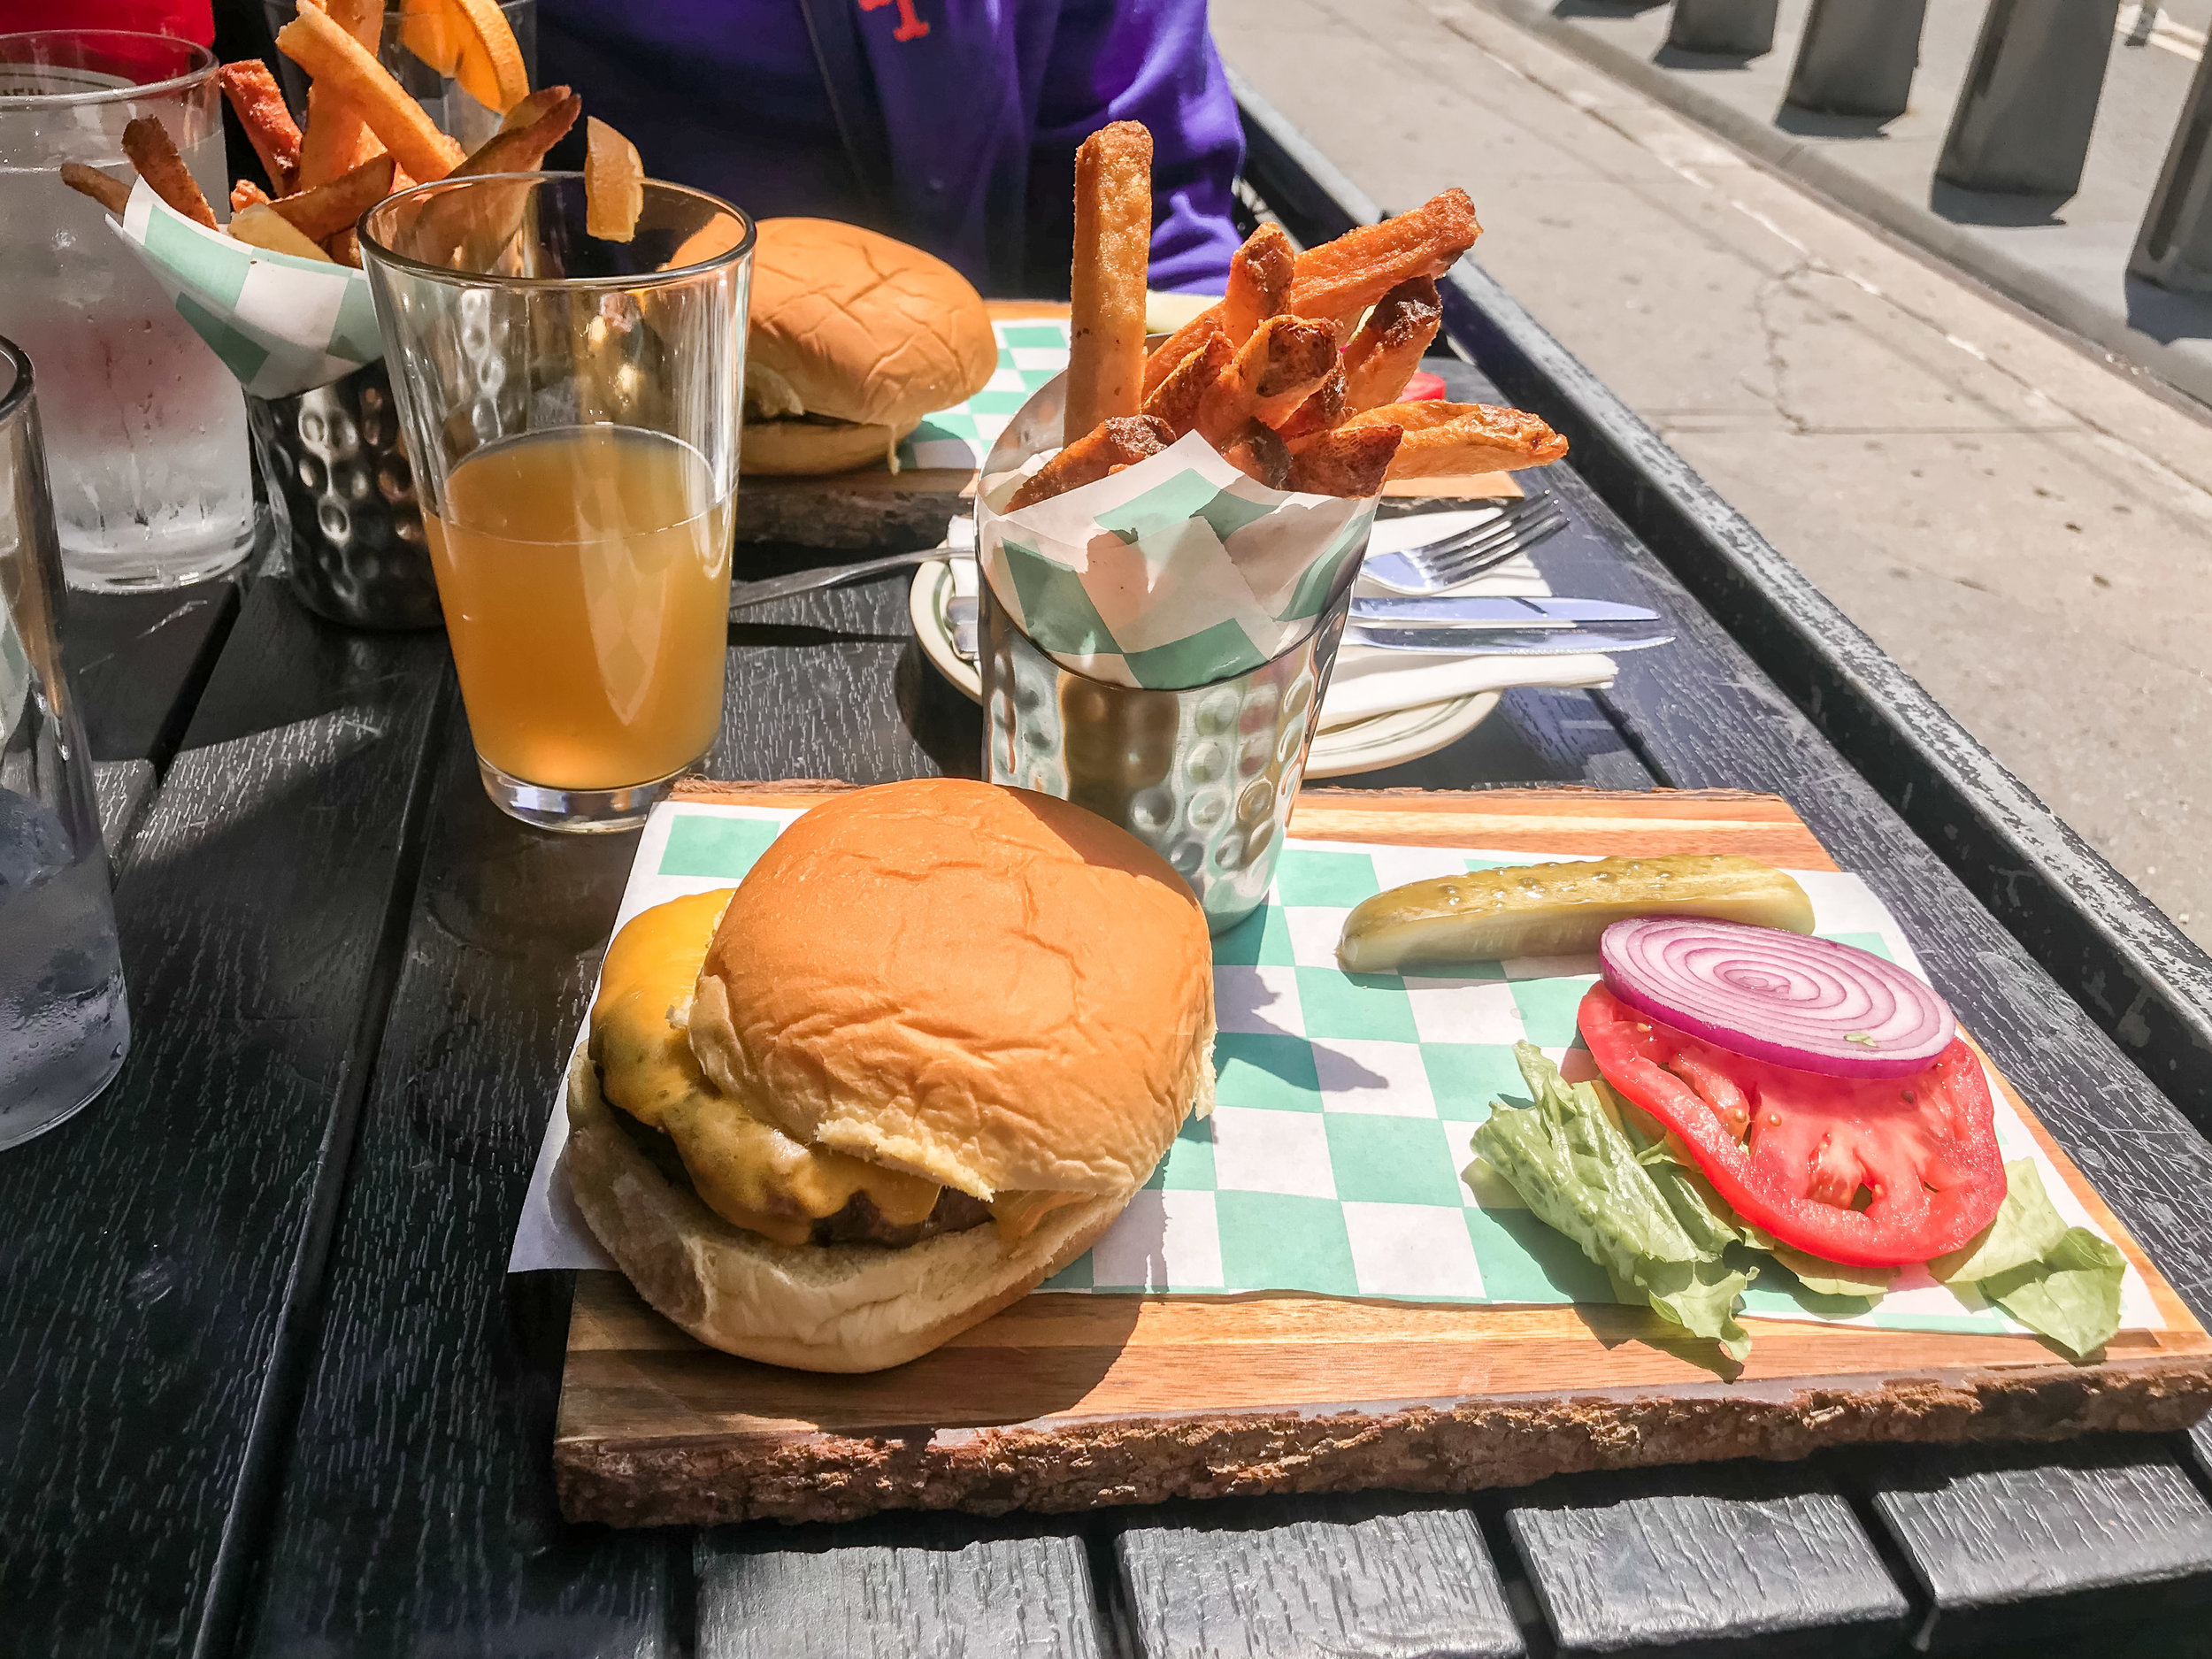 Hells Kitchen Irish Pub, Cheeseburger and French fries, Blue moon beer, lunch special.jpg